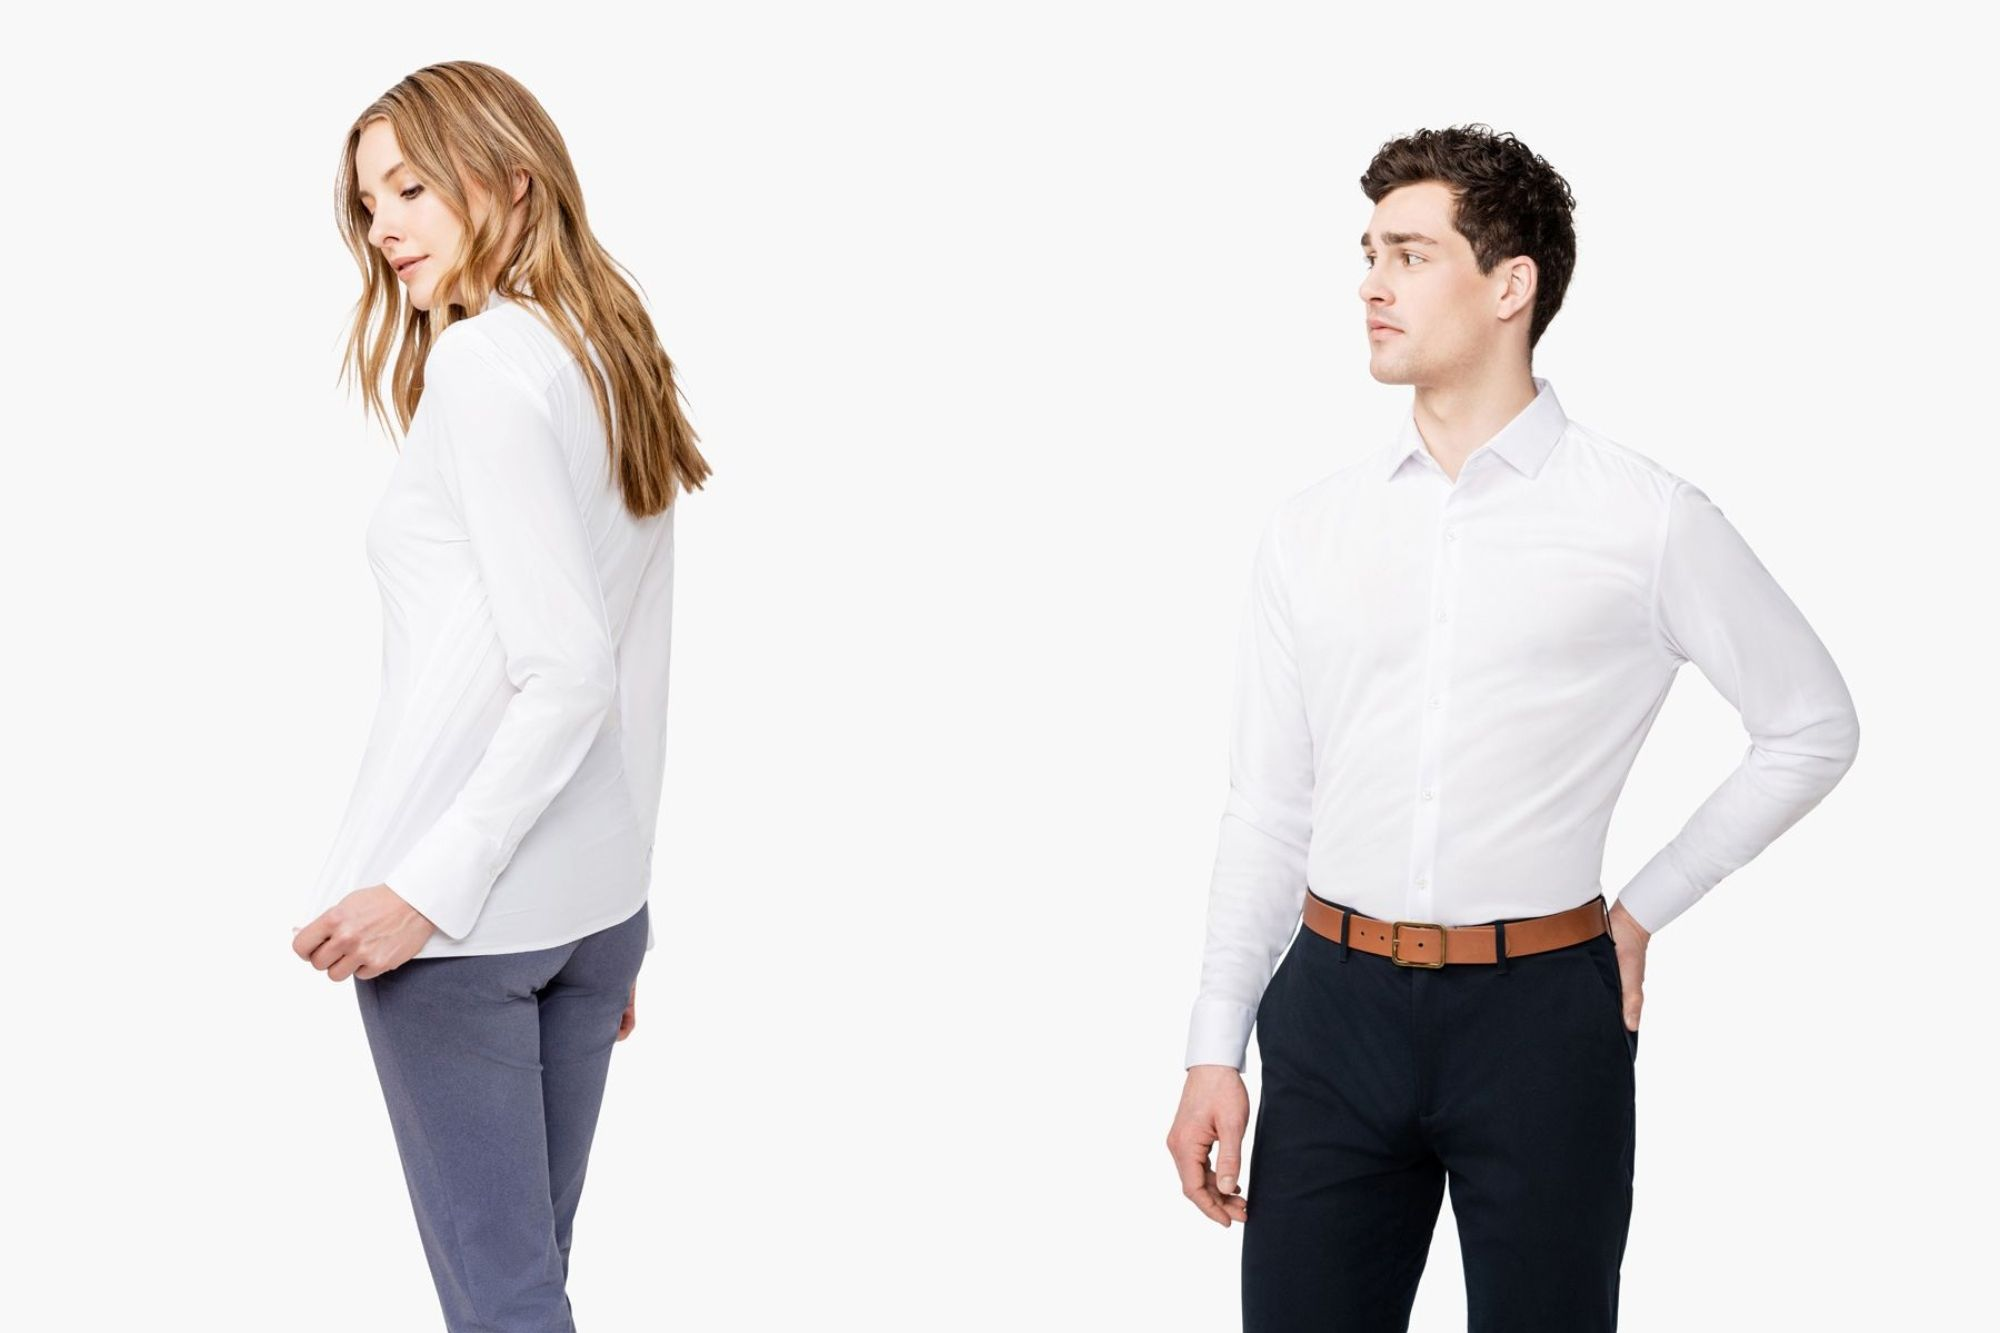 5 Direct-to-Consumer Clothing Brands We're Seeing All Over the Office